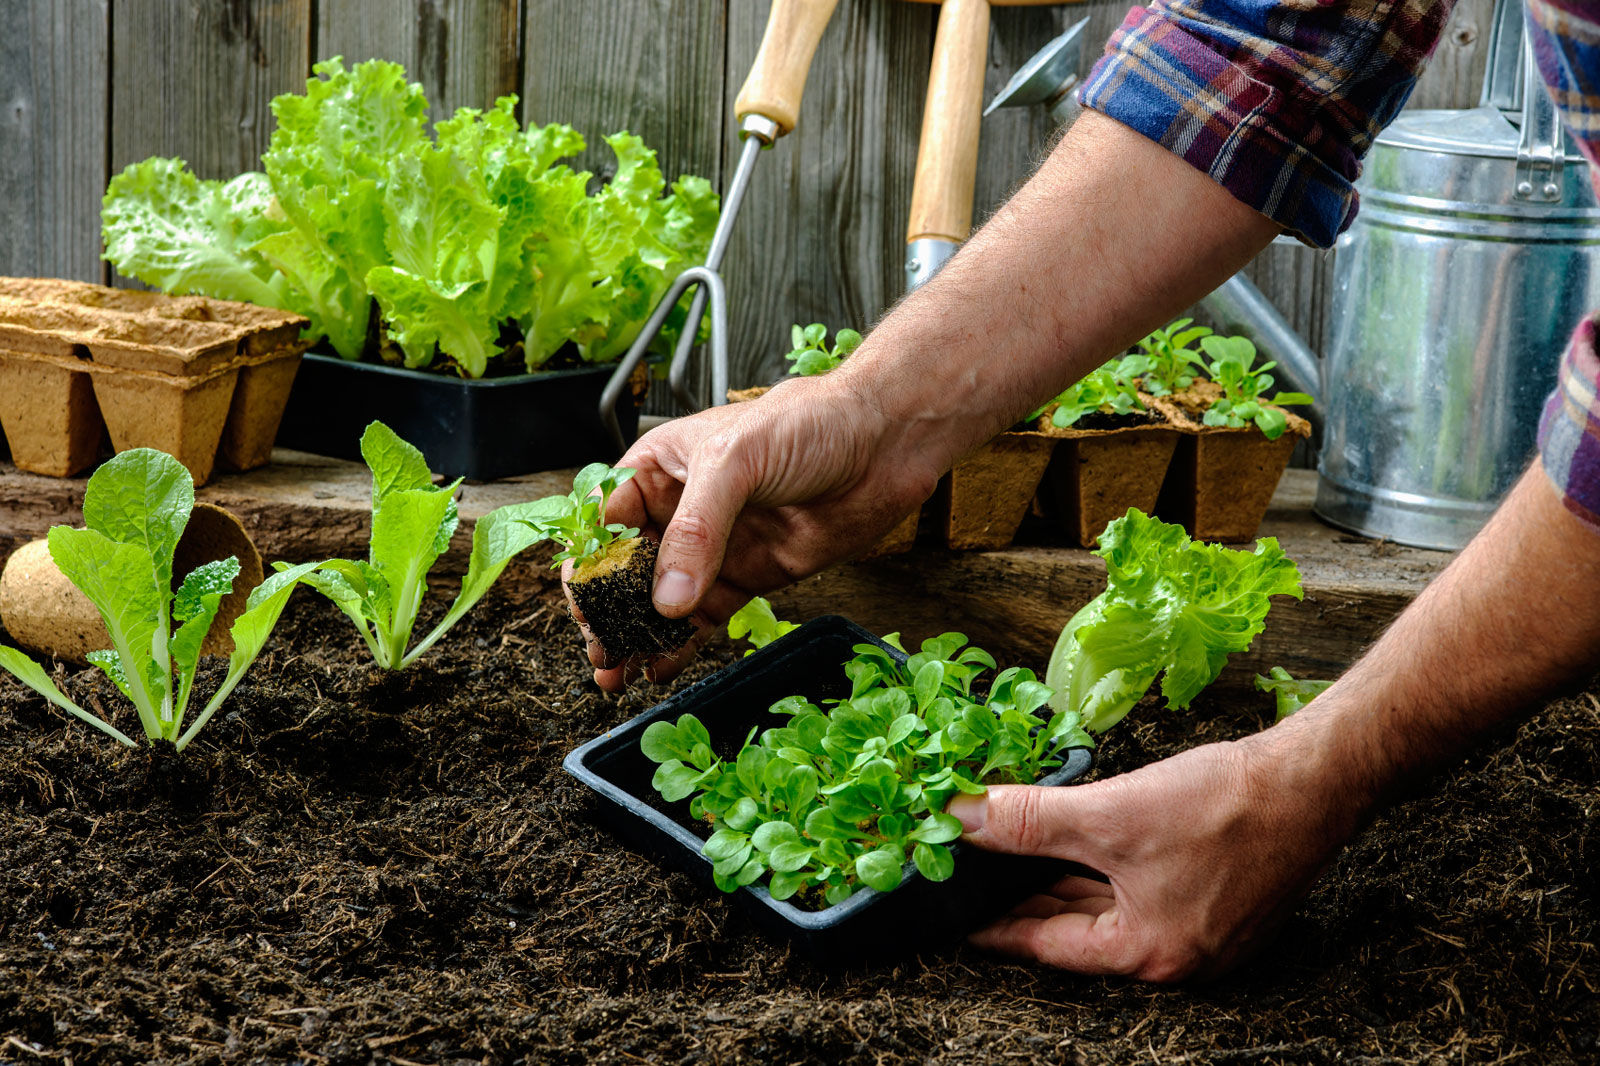 Vegetable Gardening for a Resilient Community